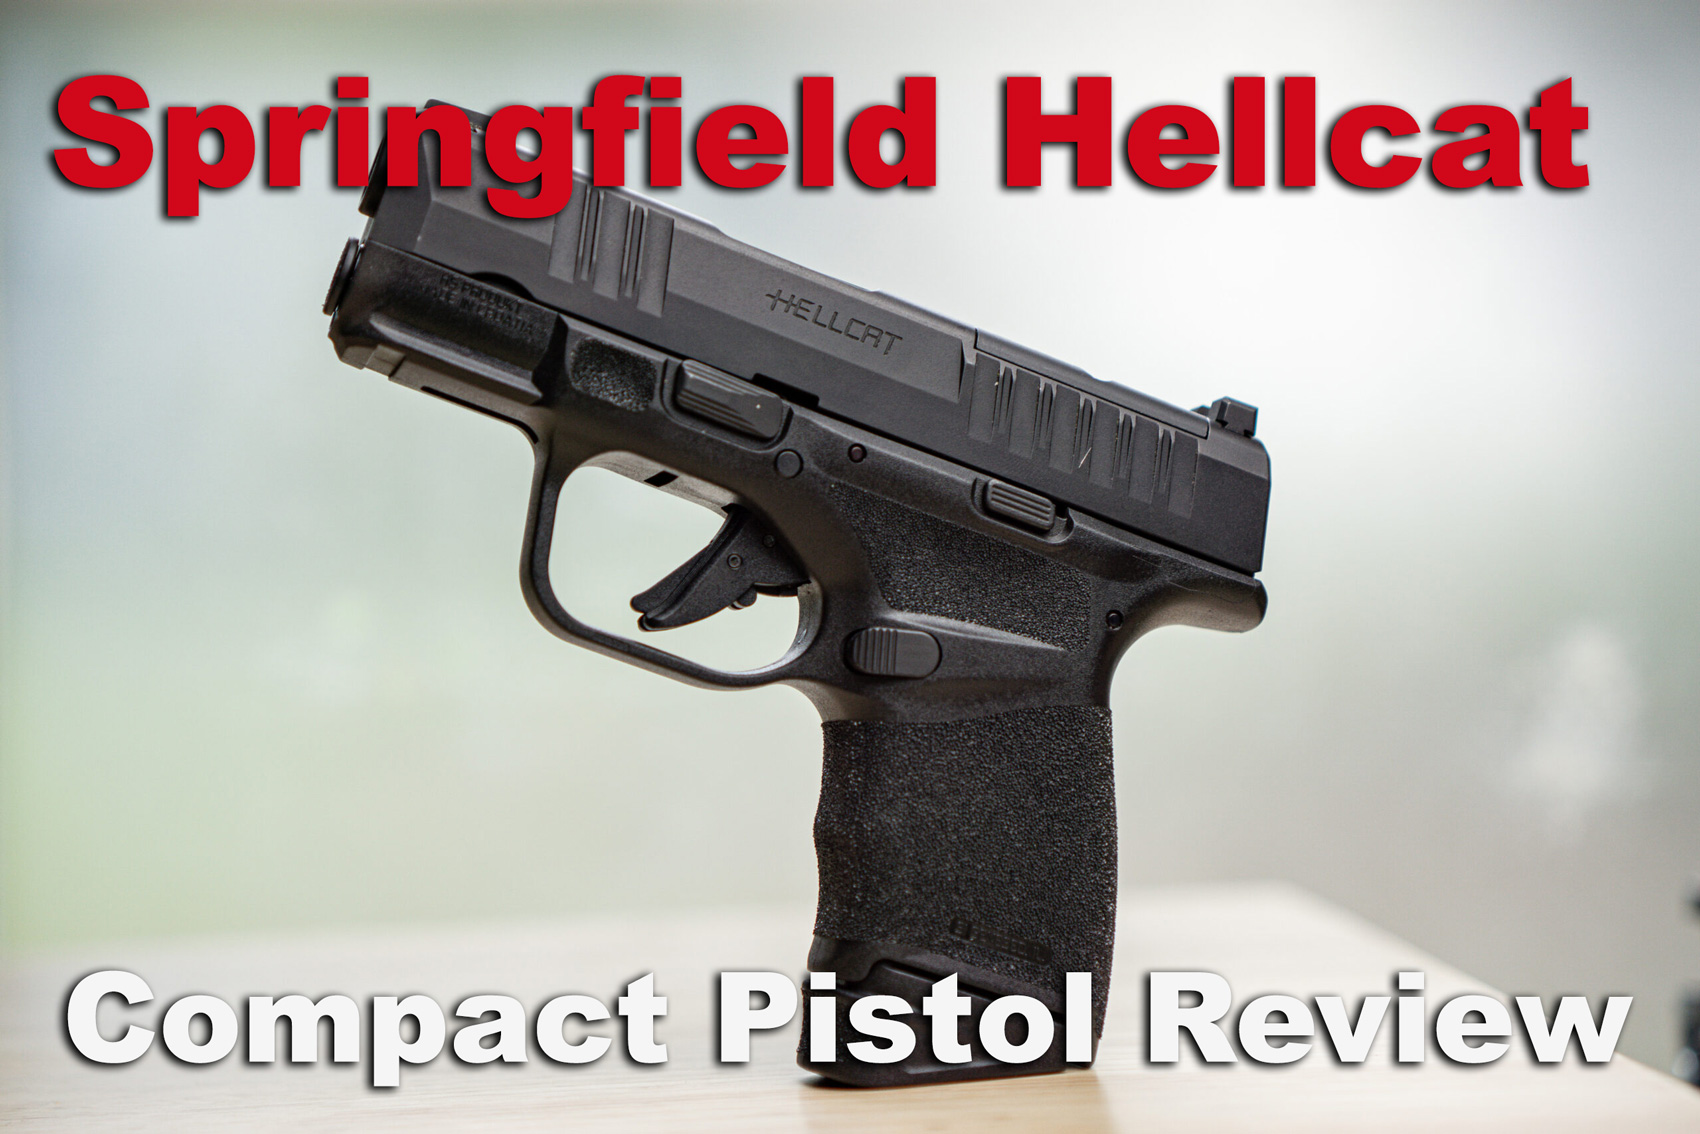 Springfield Hellcat review pistol displayed